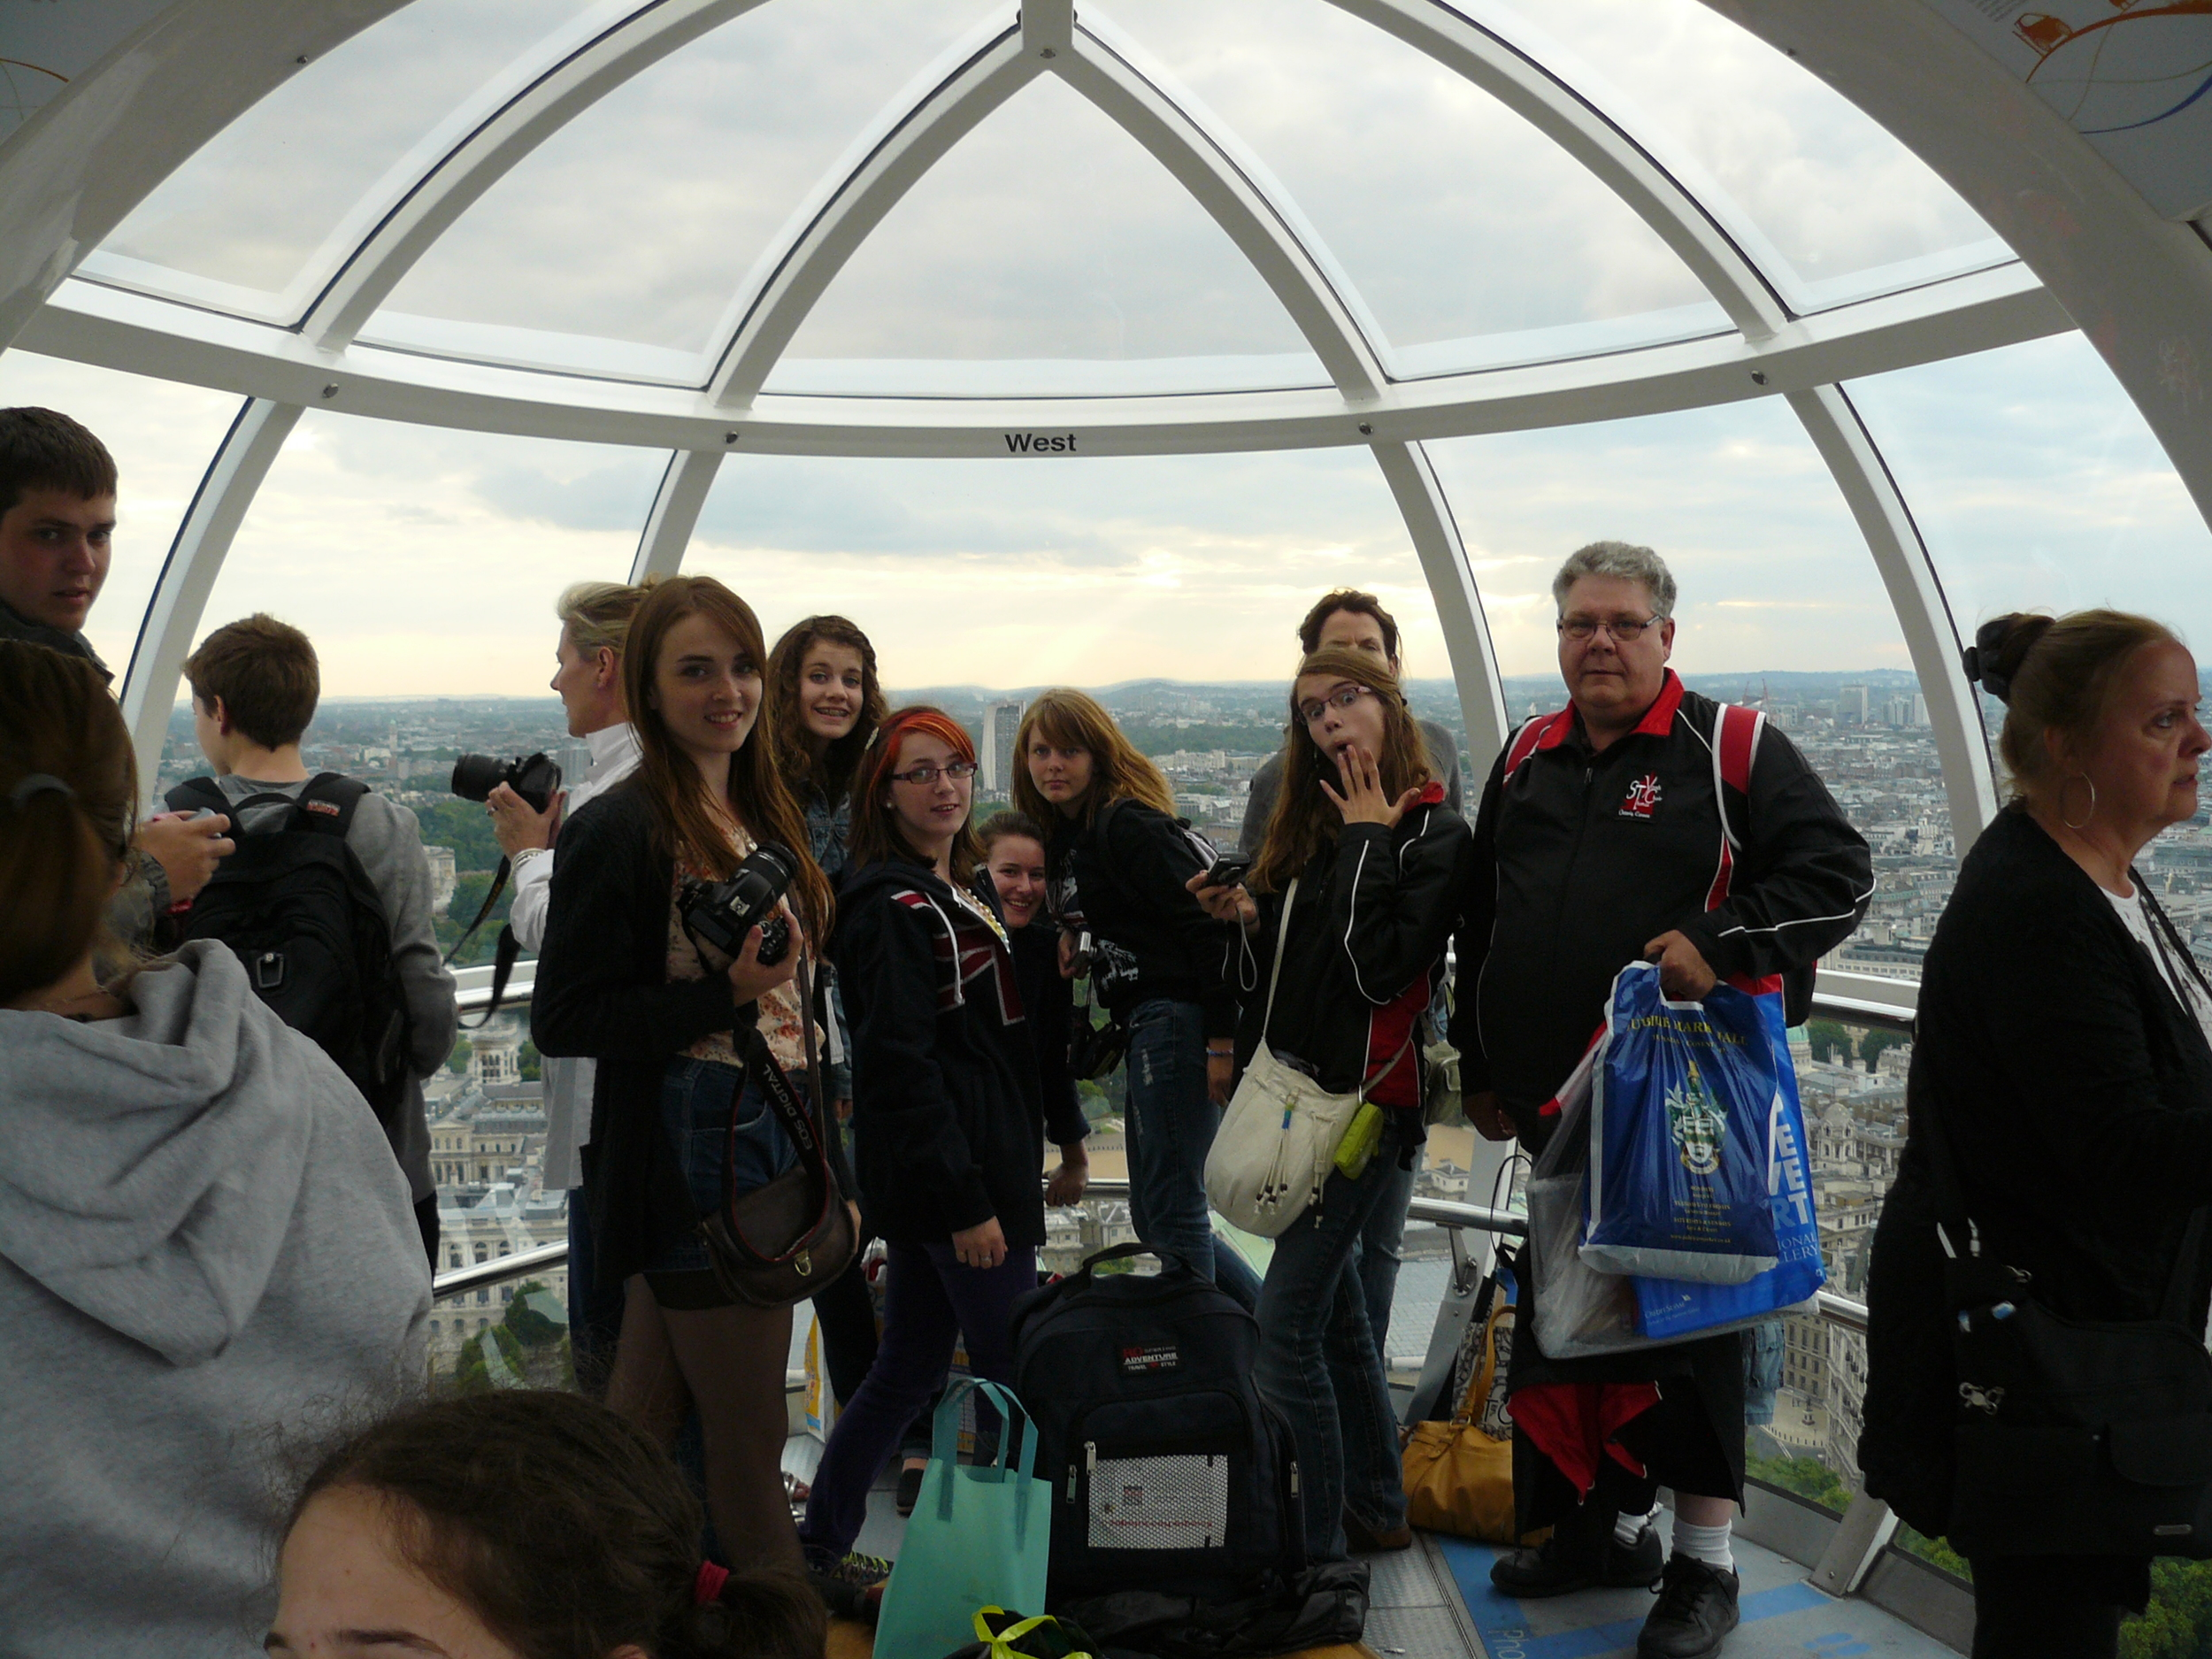 Riding on the London Eye. The largest ferriswheel in the world.